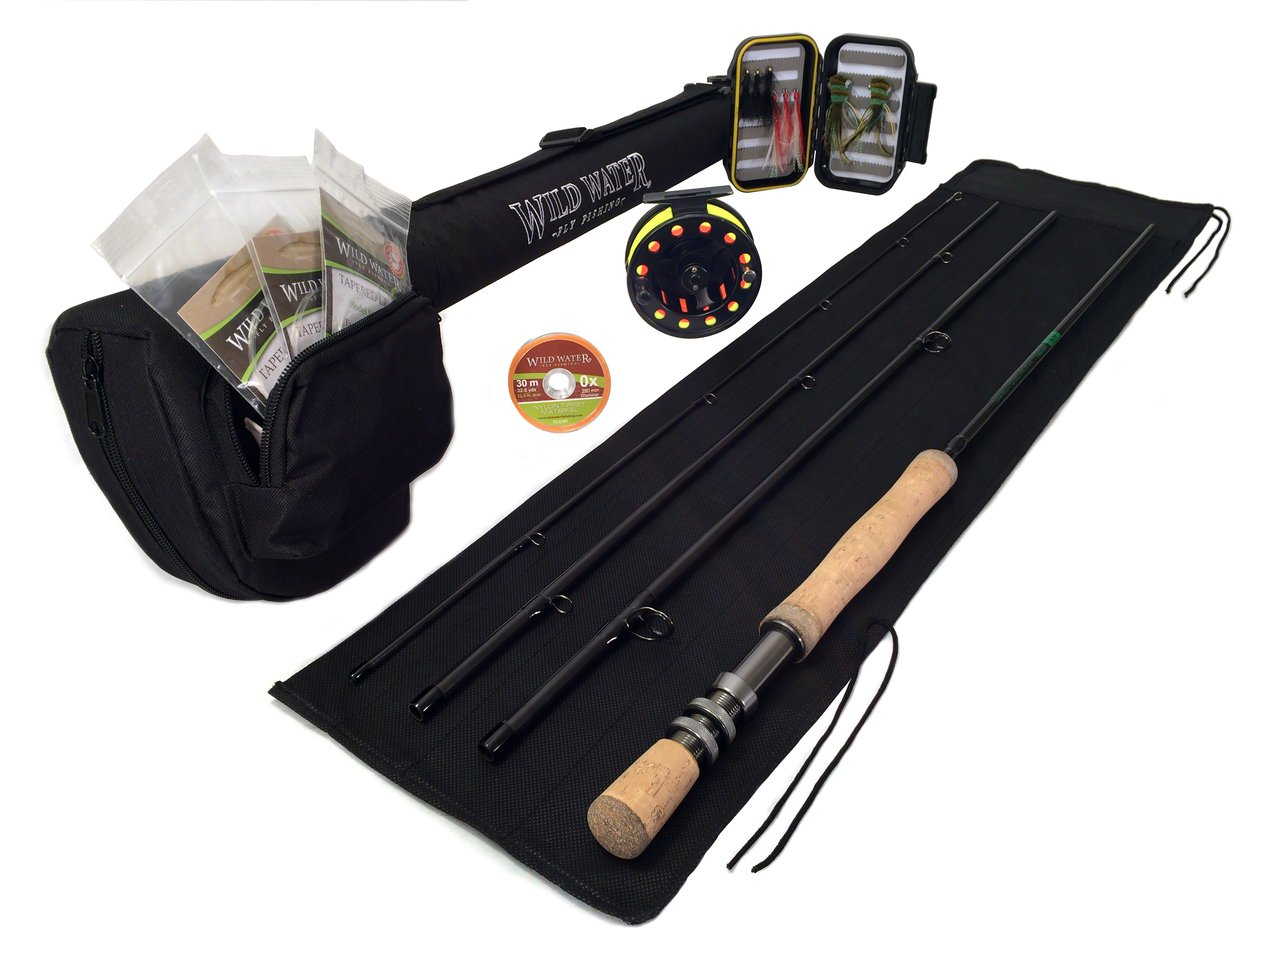 DELUXE Wild Water Fly Fishing Complete AX78-090-4 Starter Package (Freshwater Fly Assortment) by Wild Water